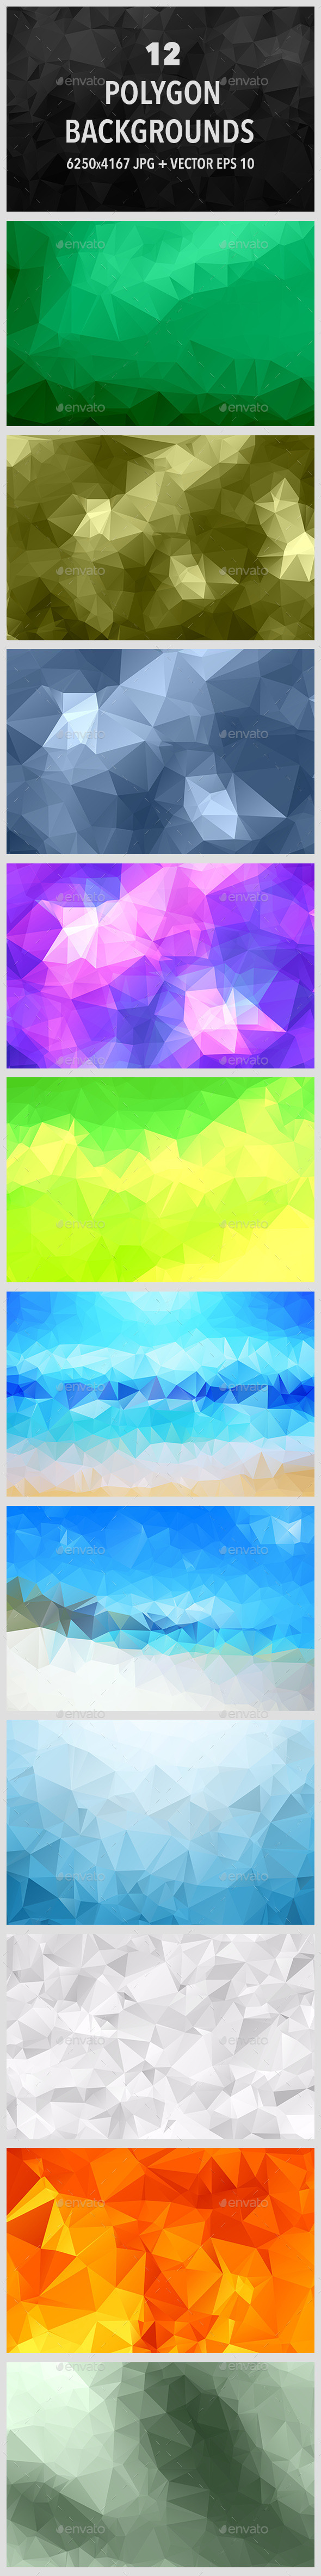 12 Polygonal Backgrounds - Abstract Backgrounds